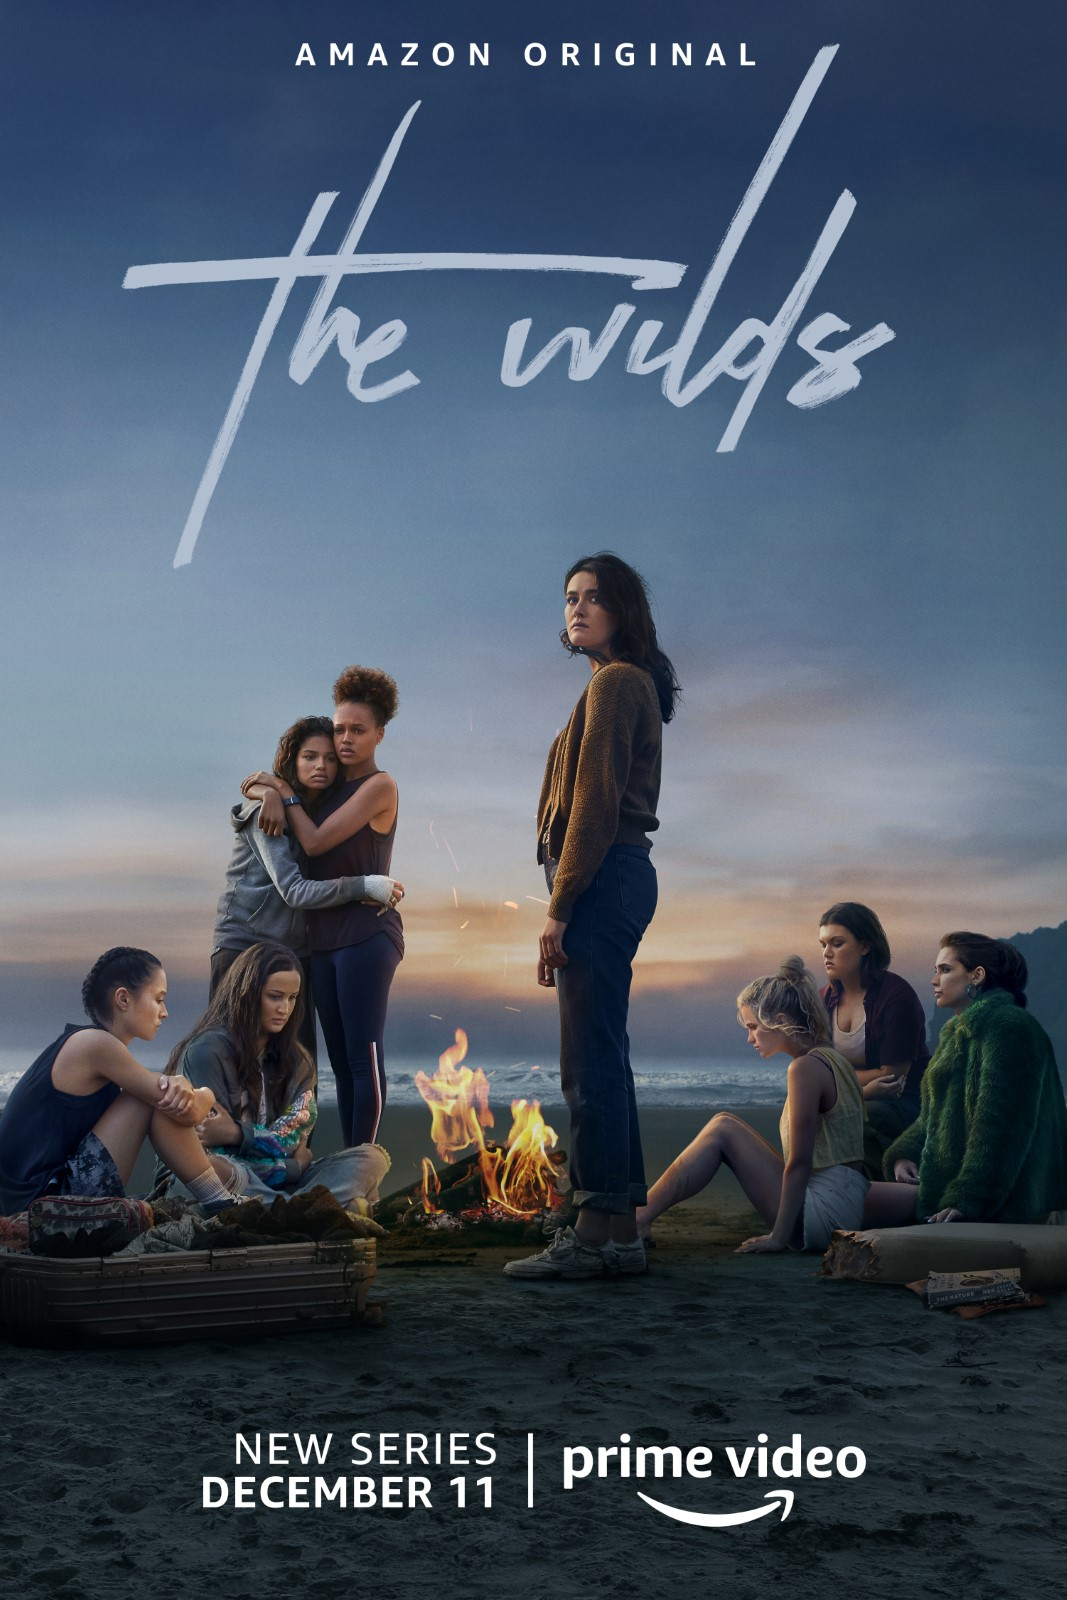 The Wilds Amazon Prime Poster